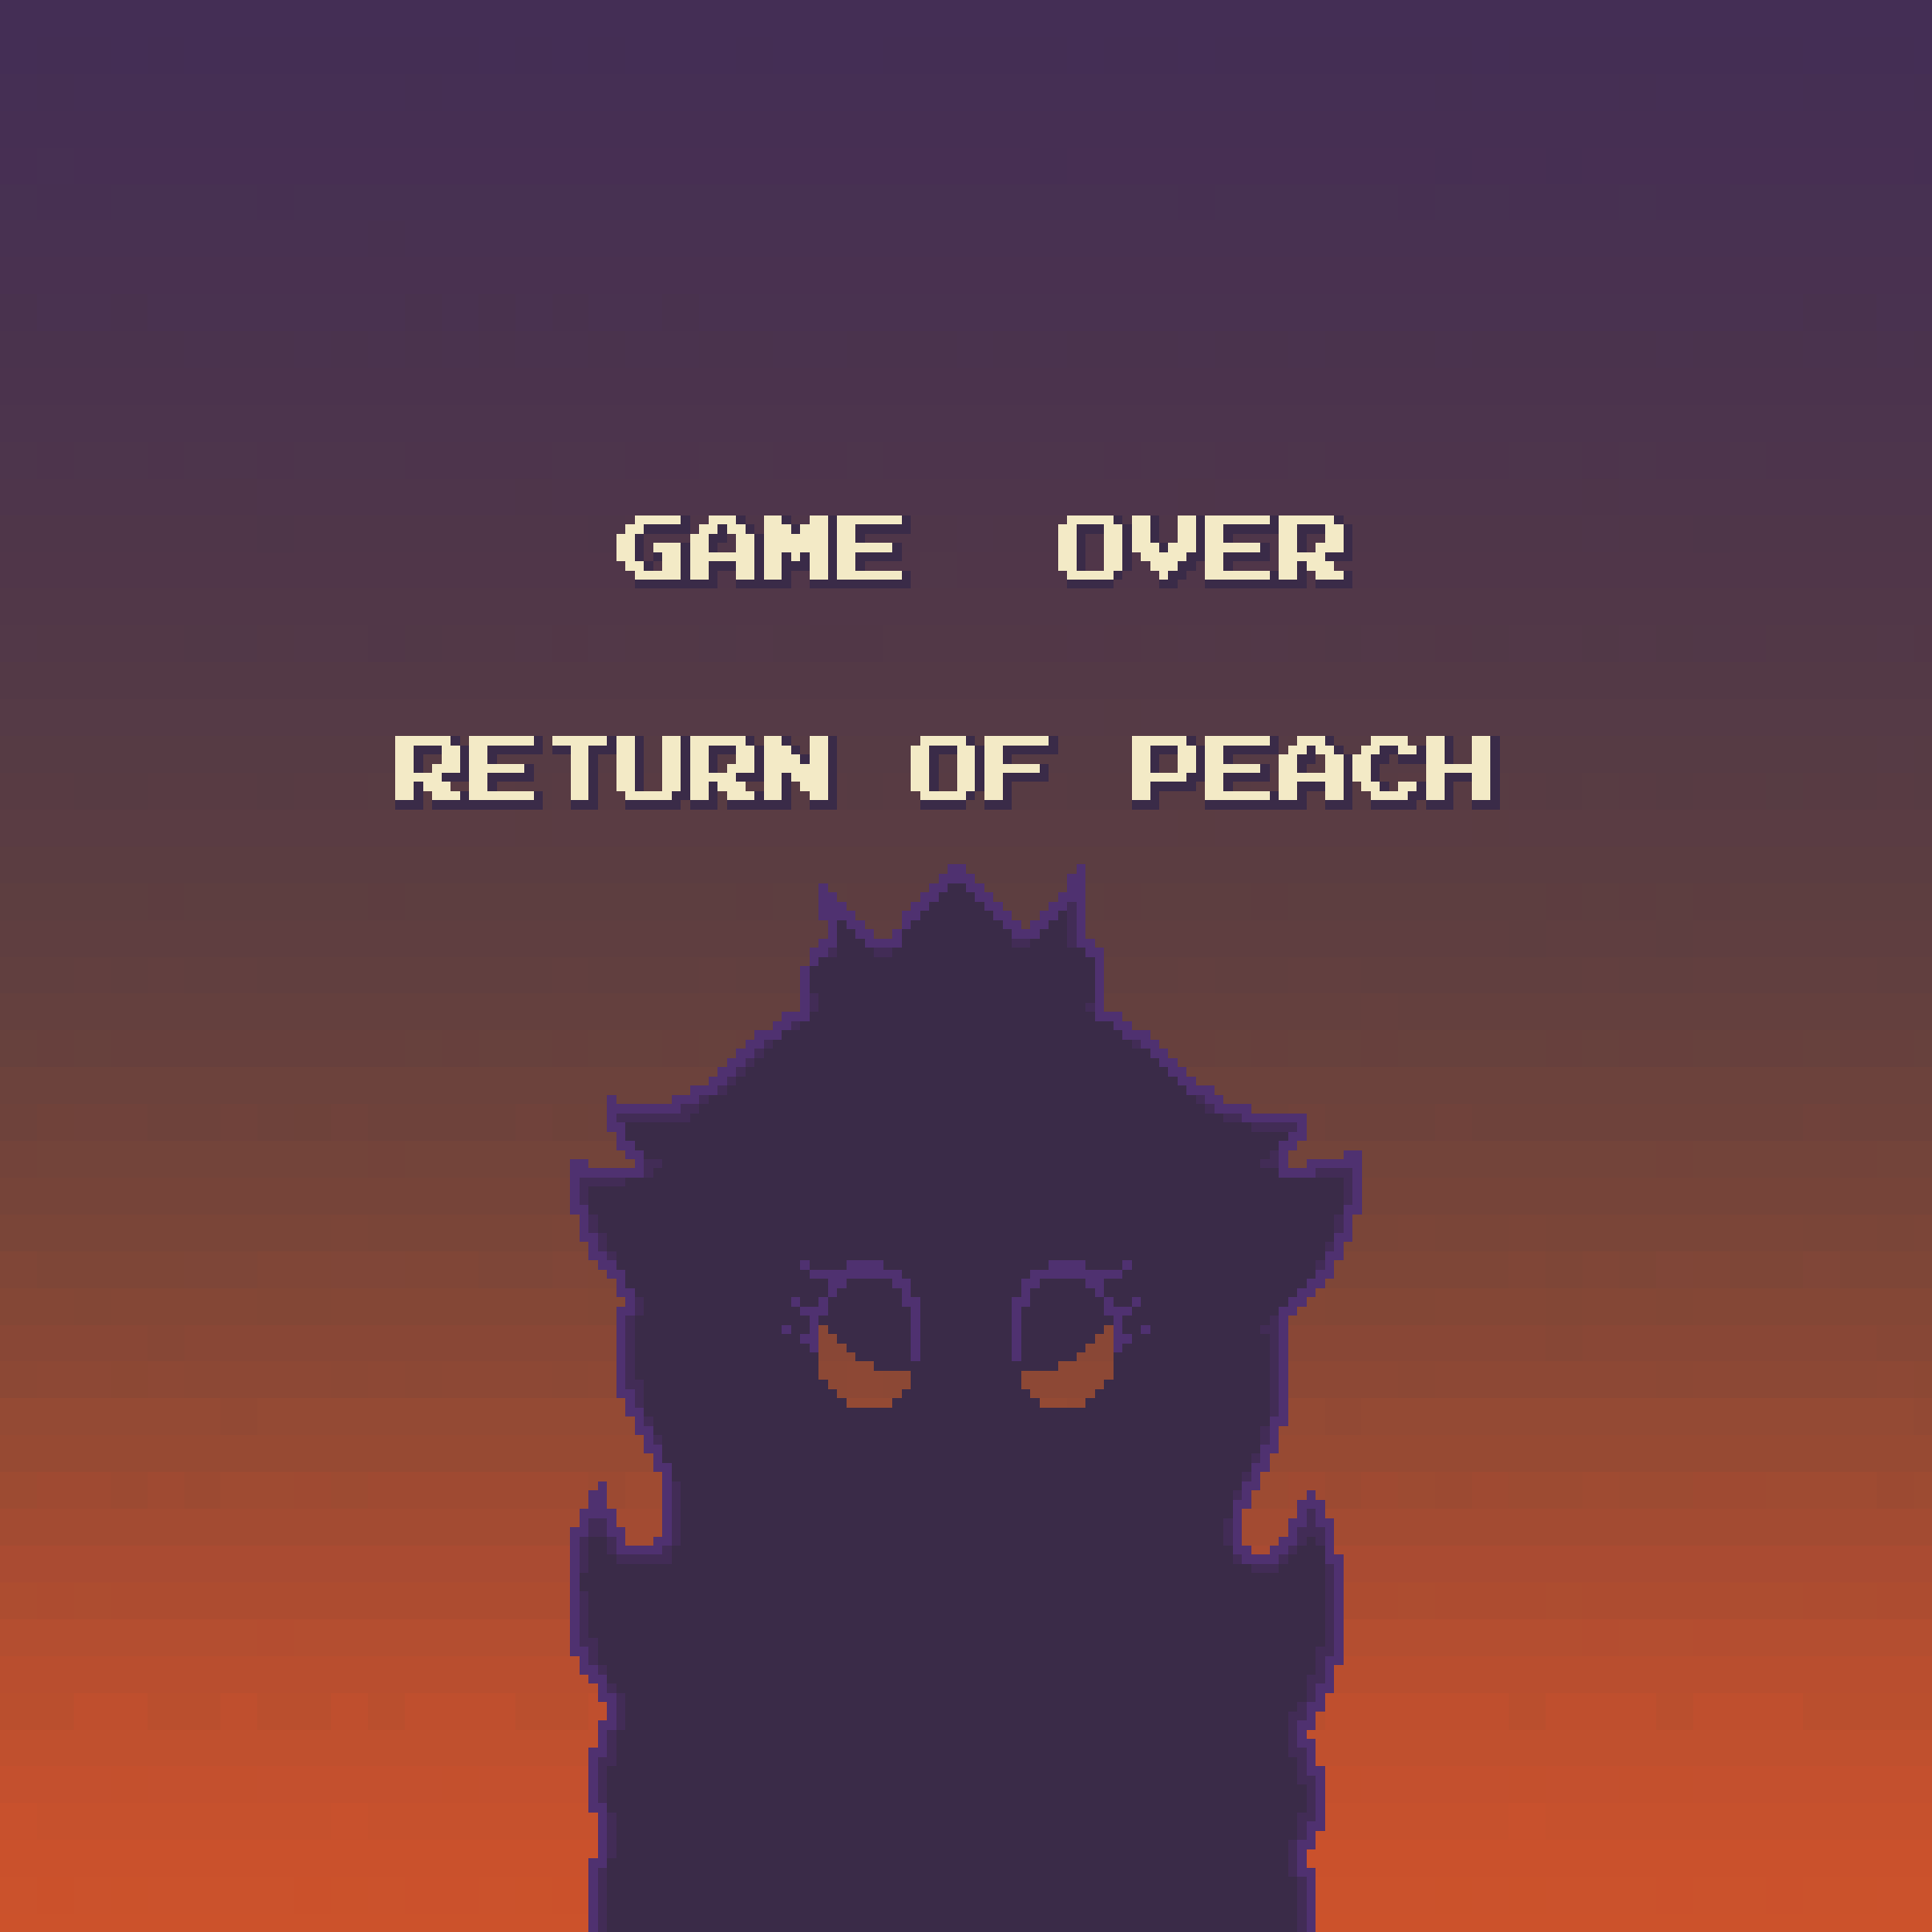 game-over-return-of-ganon-zelda-2.png